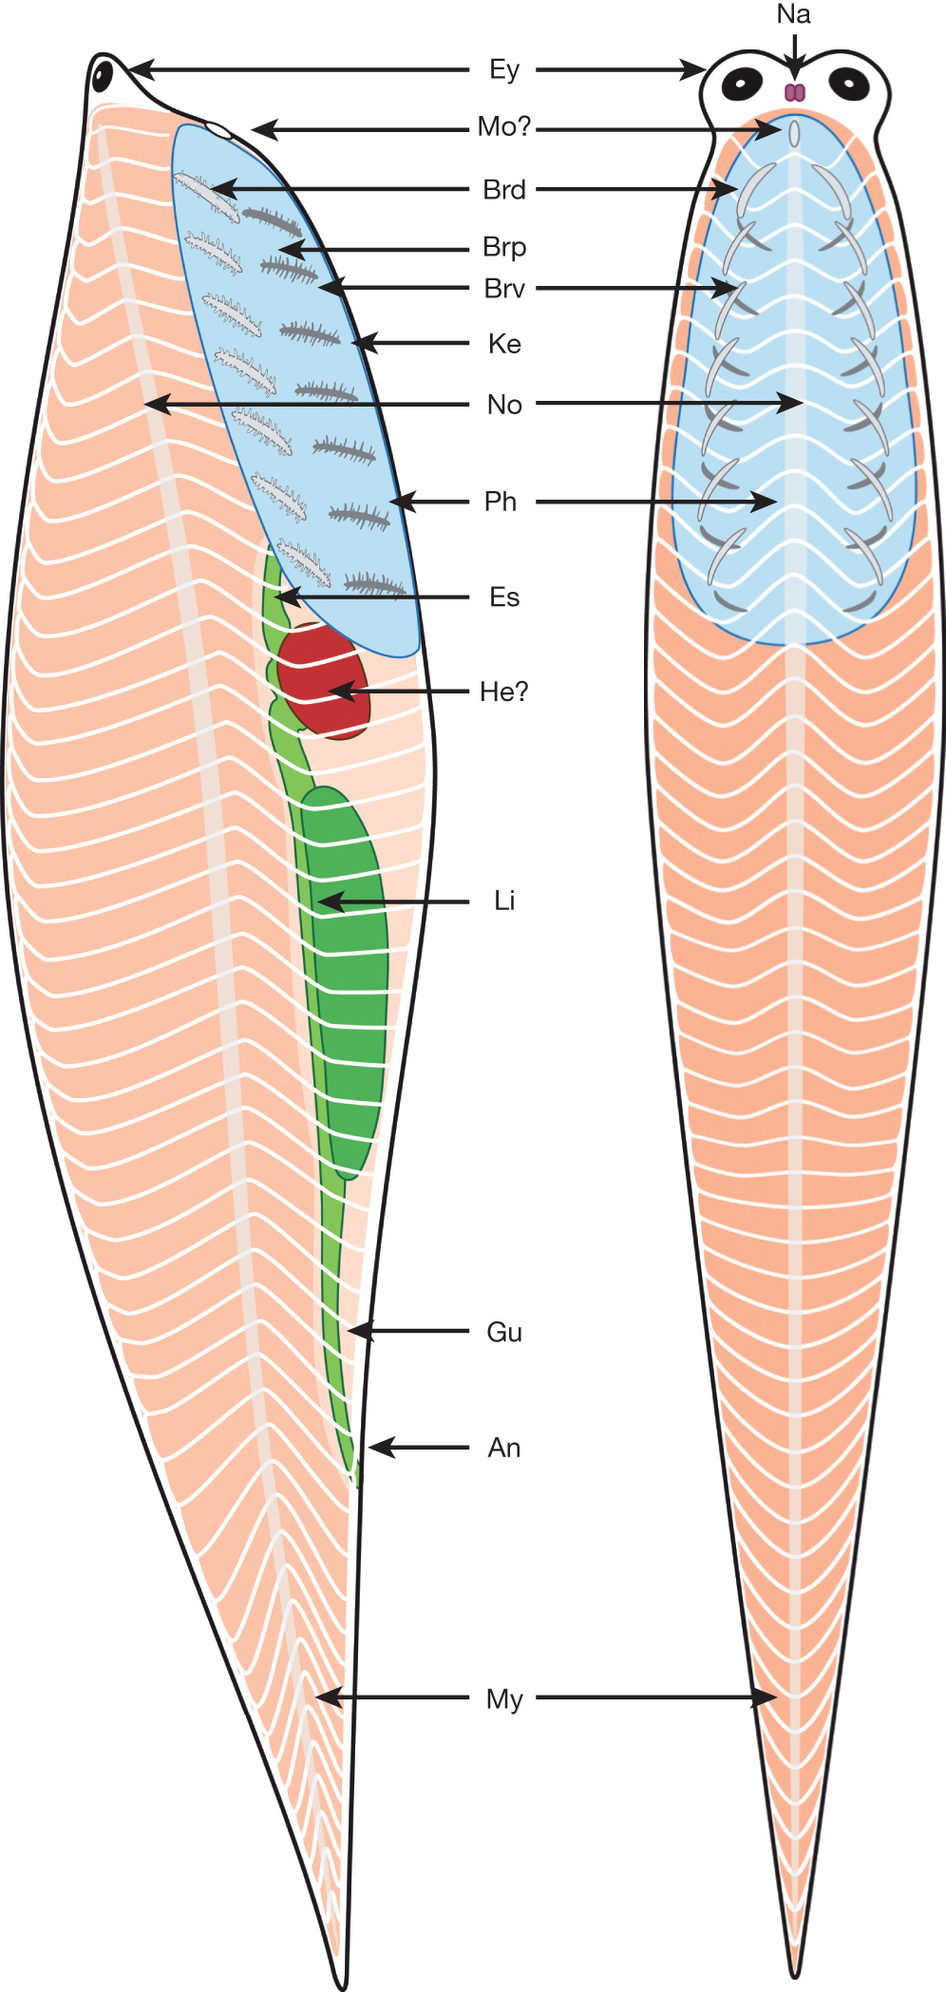 An, anus; Brv, branchial bars (ventral element); Brd, branchial bars (dorsal element); Brp, branchial bar processes; Es, oesophagus; Ey, eyes; Gu, gut; He?, possible heart; Li, liver; Mo?, possible position of mouth; My, myomere; Na, nasal sacs; No, notochord; Ph, pharyngeal area . (From Fig. 2)